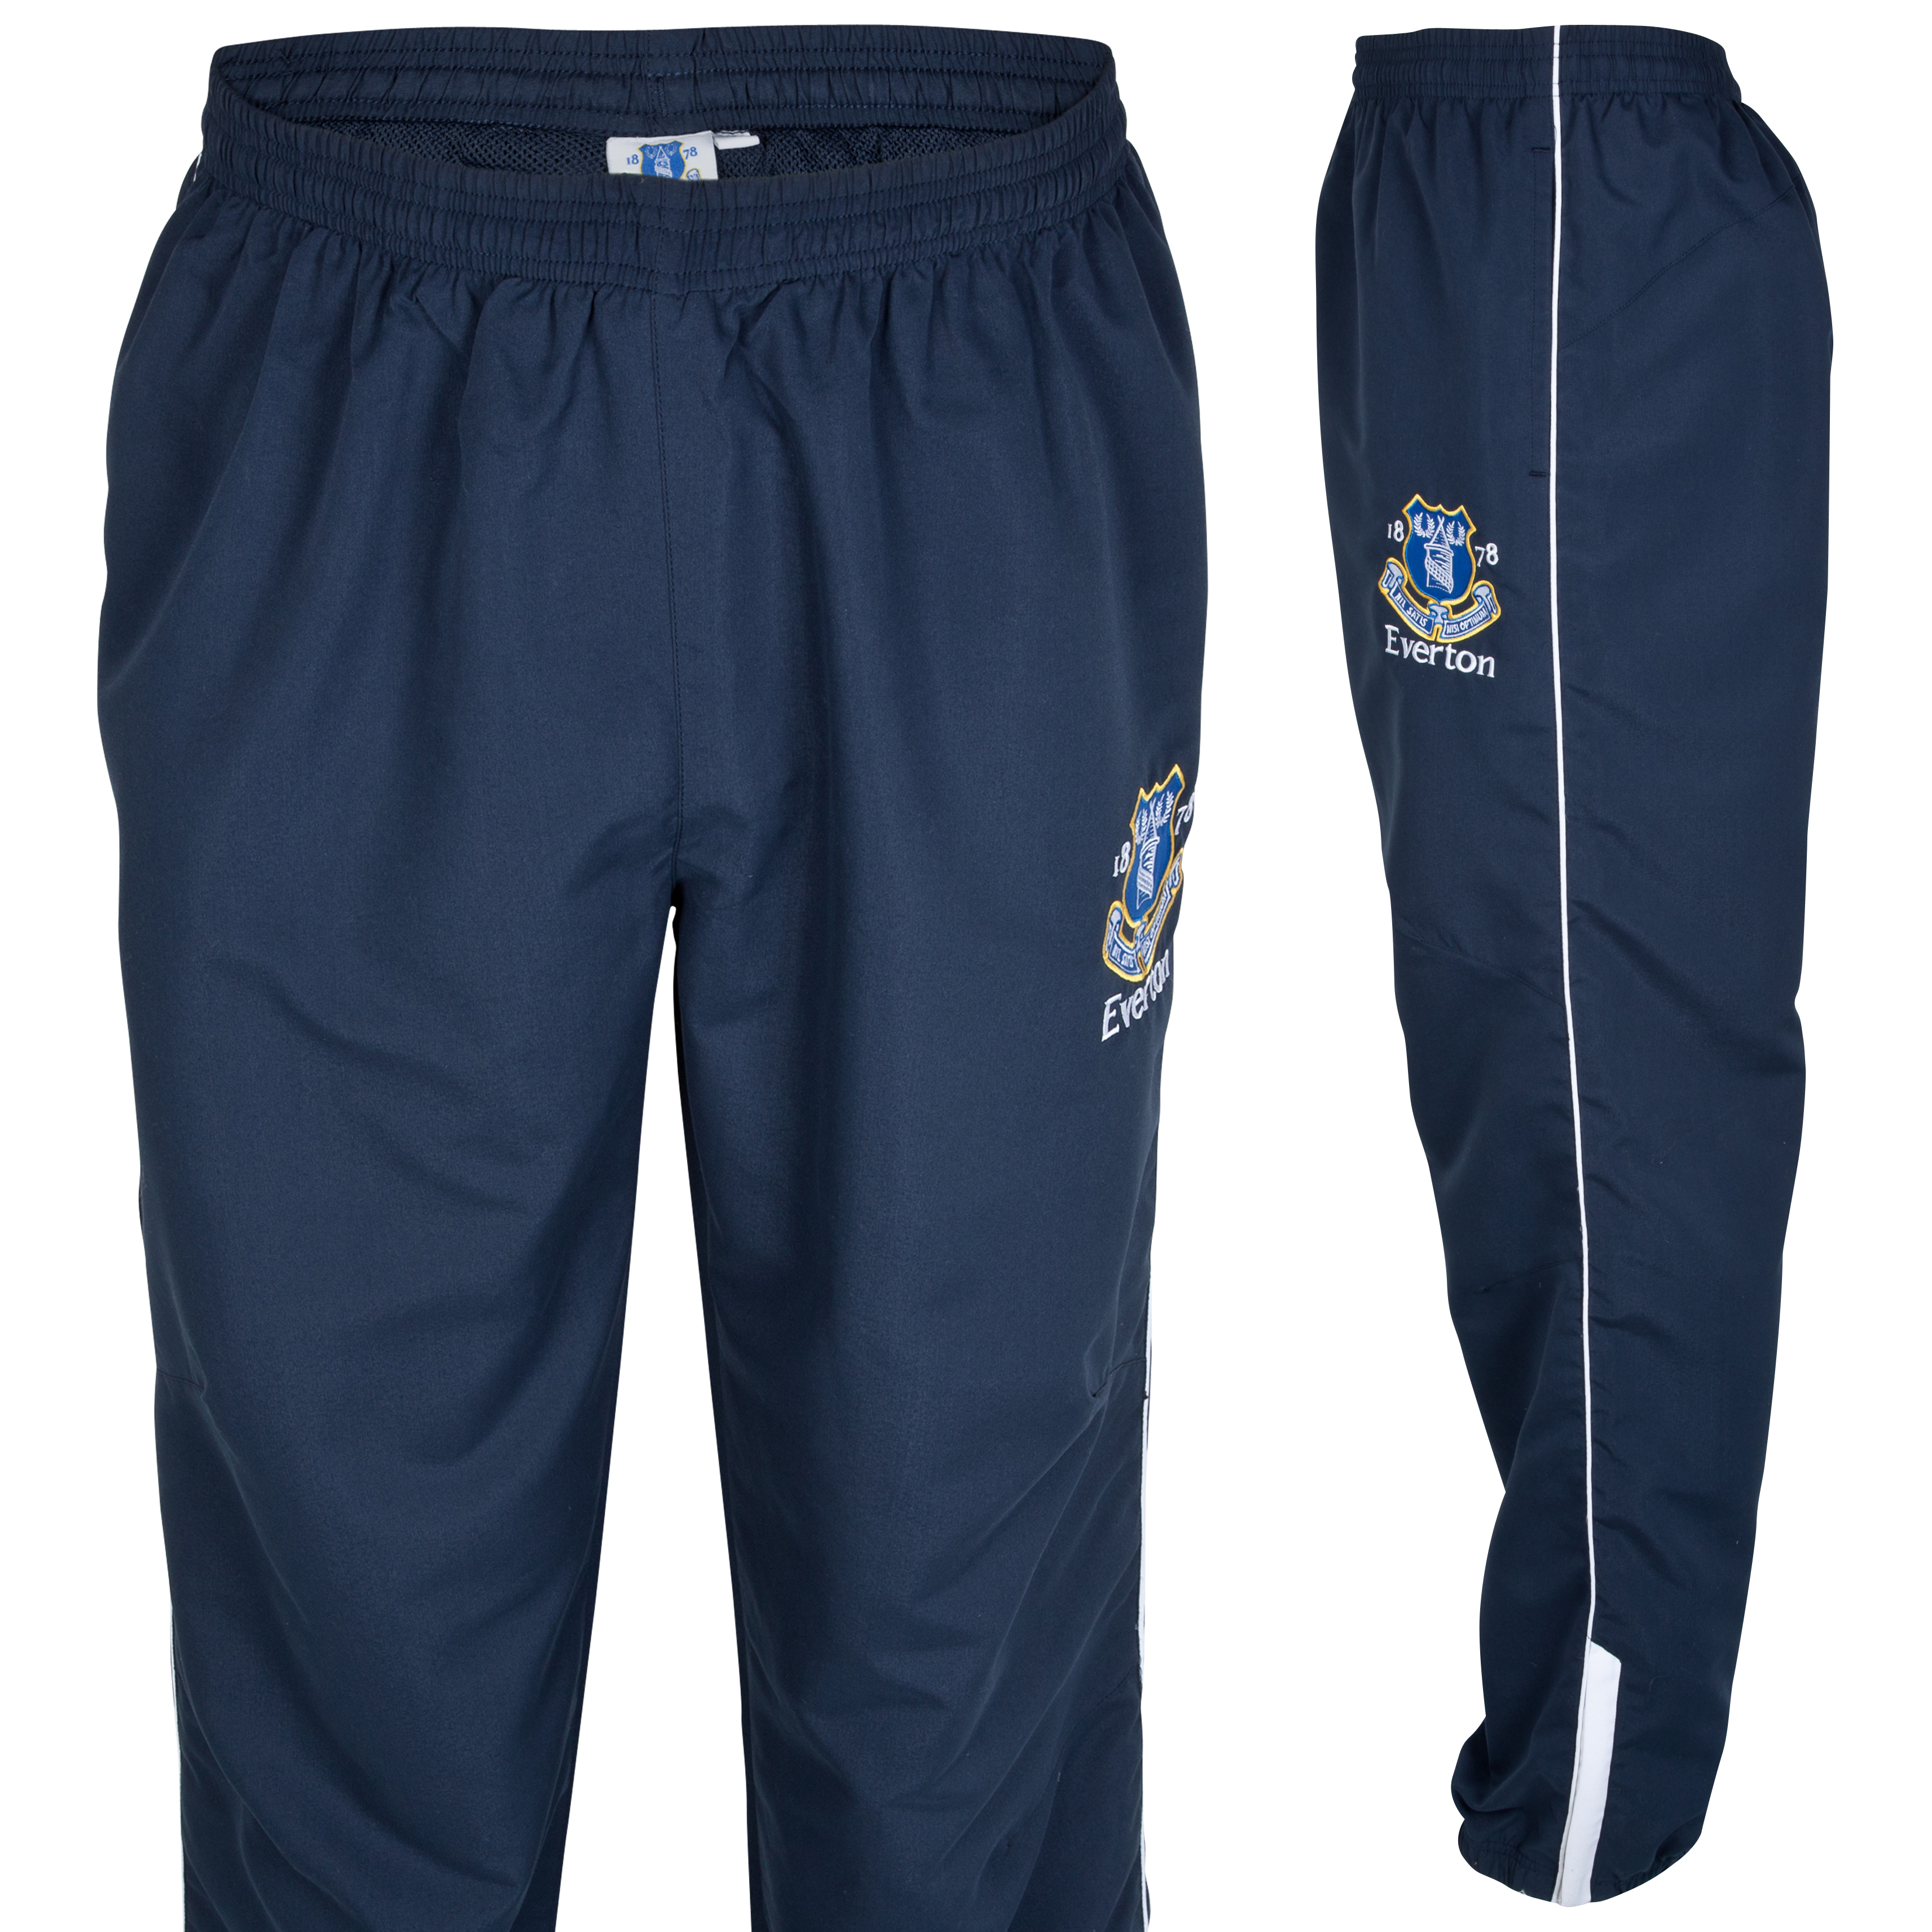 Everton Essentials Woven Pant - Navy